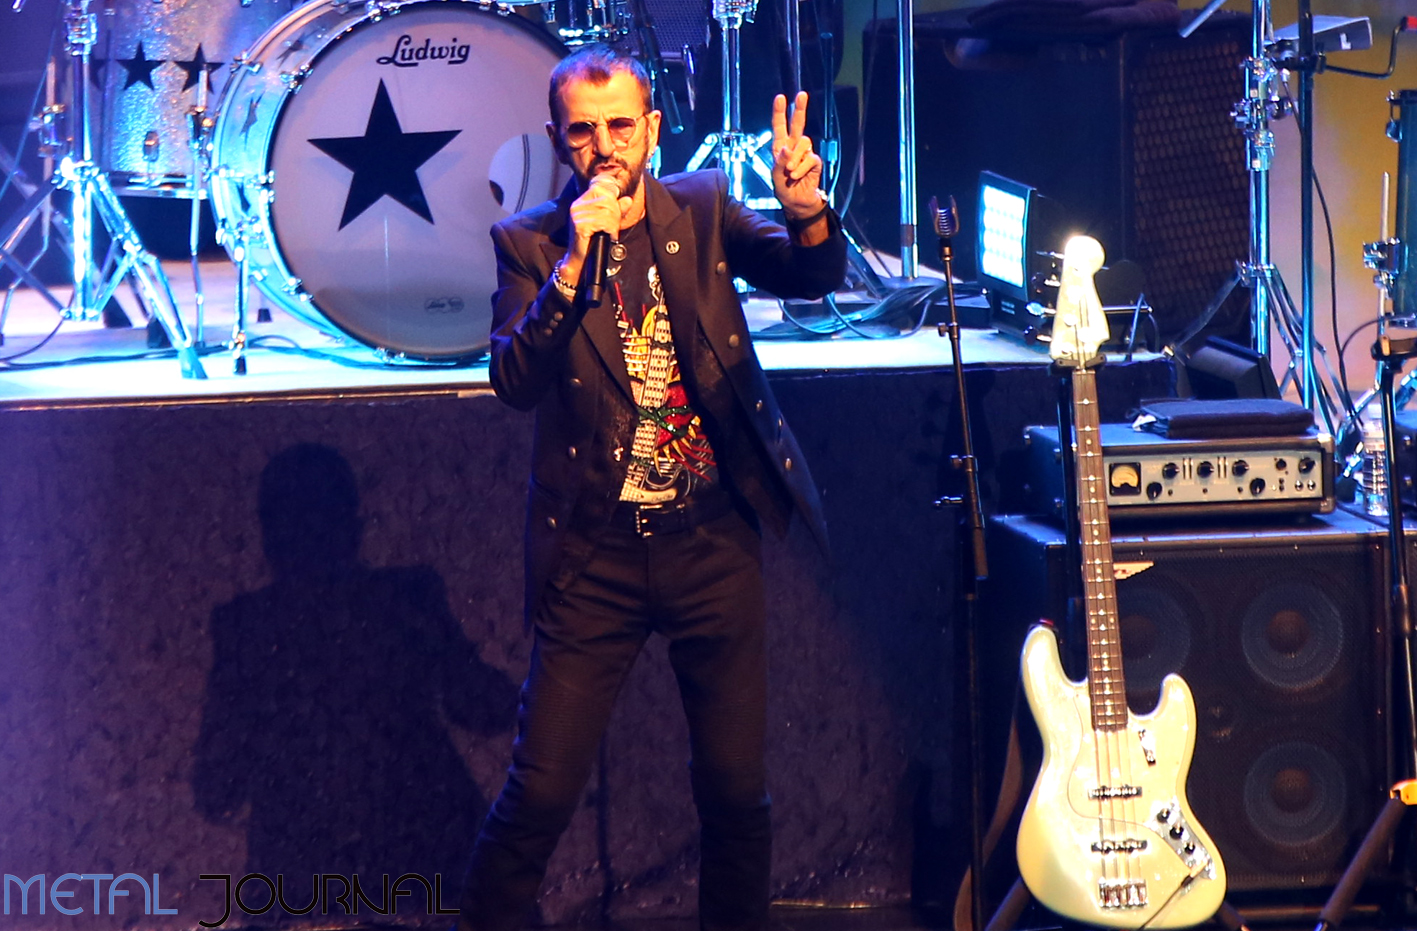 ringo starr - metal journal 2018 pic 5